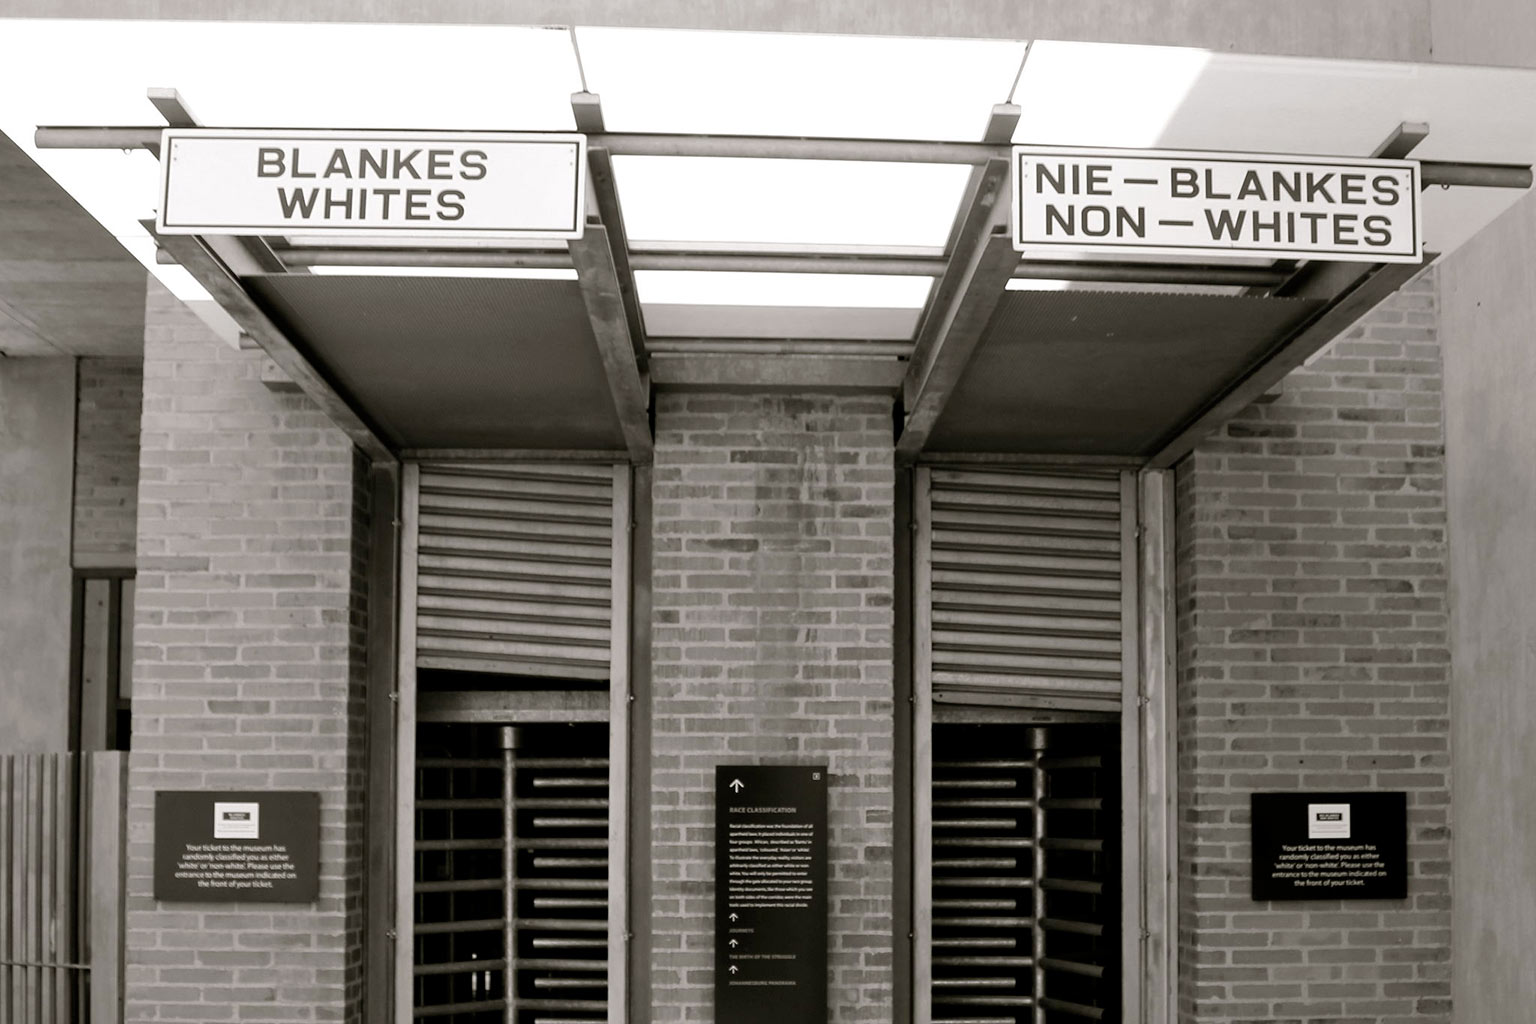 signage for whites vs. non-whites outside building